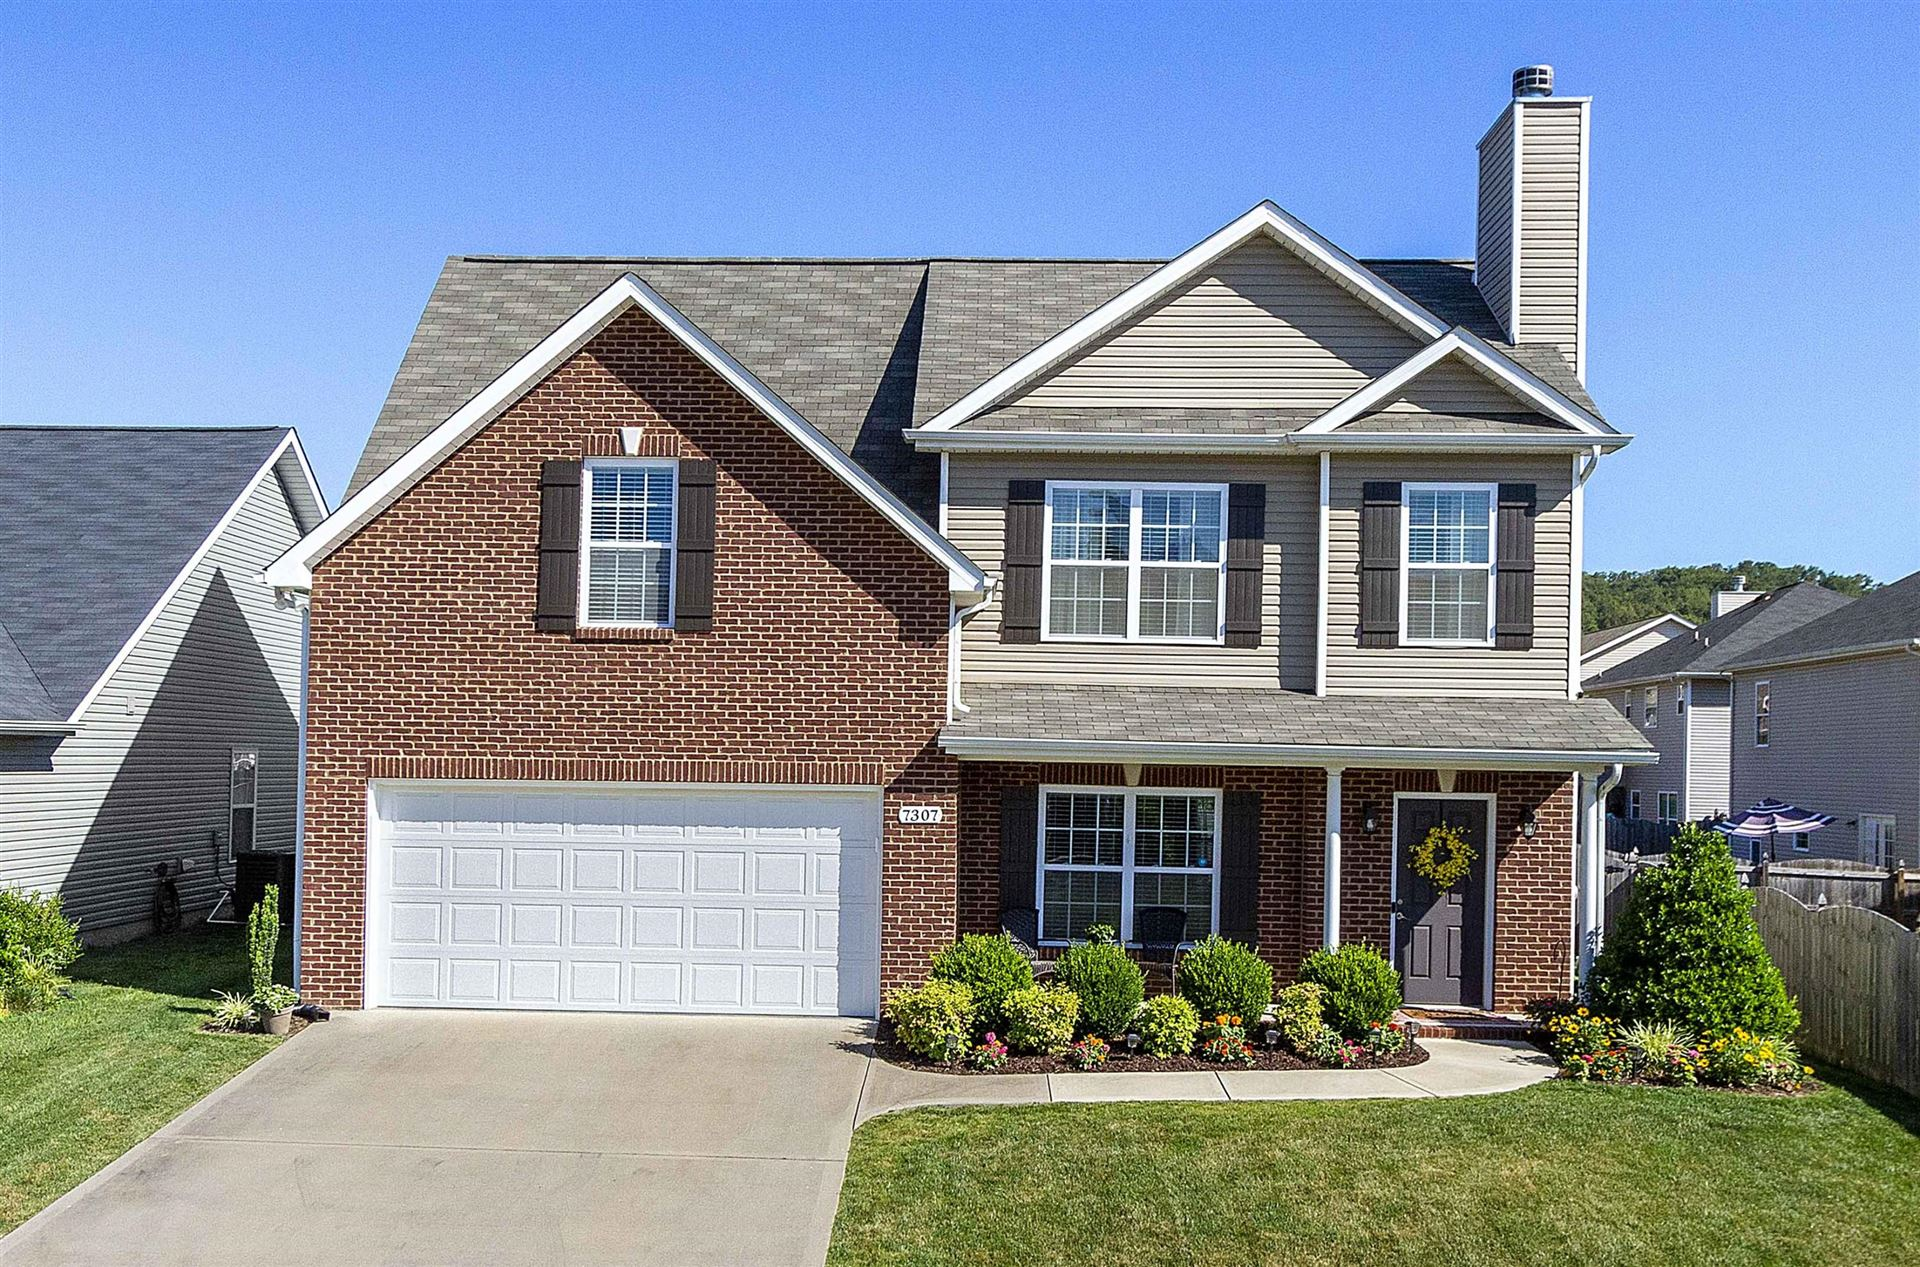 Photo of 7307 Lucky Clover Lane, Knoxville, TN 37931 (MLS # 1156862)